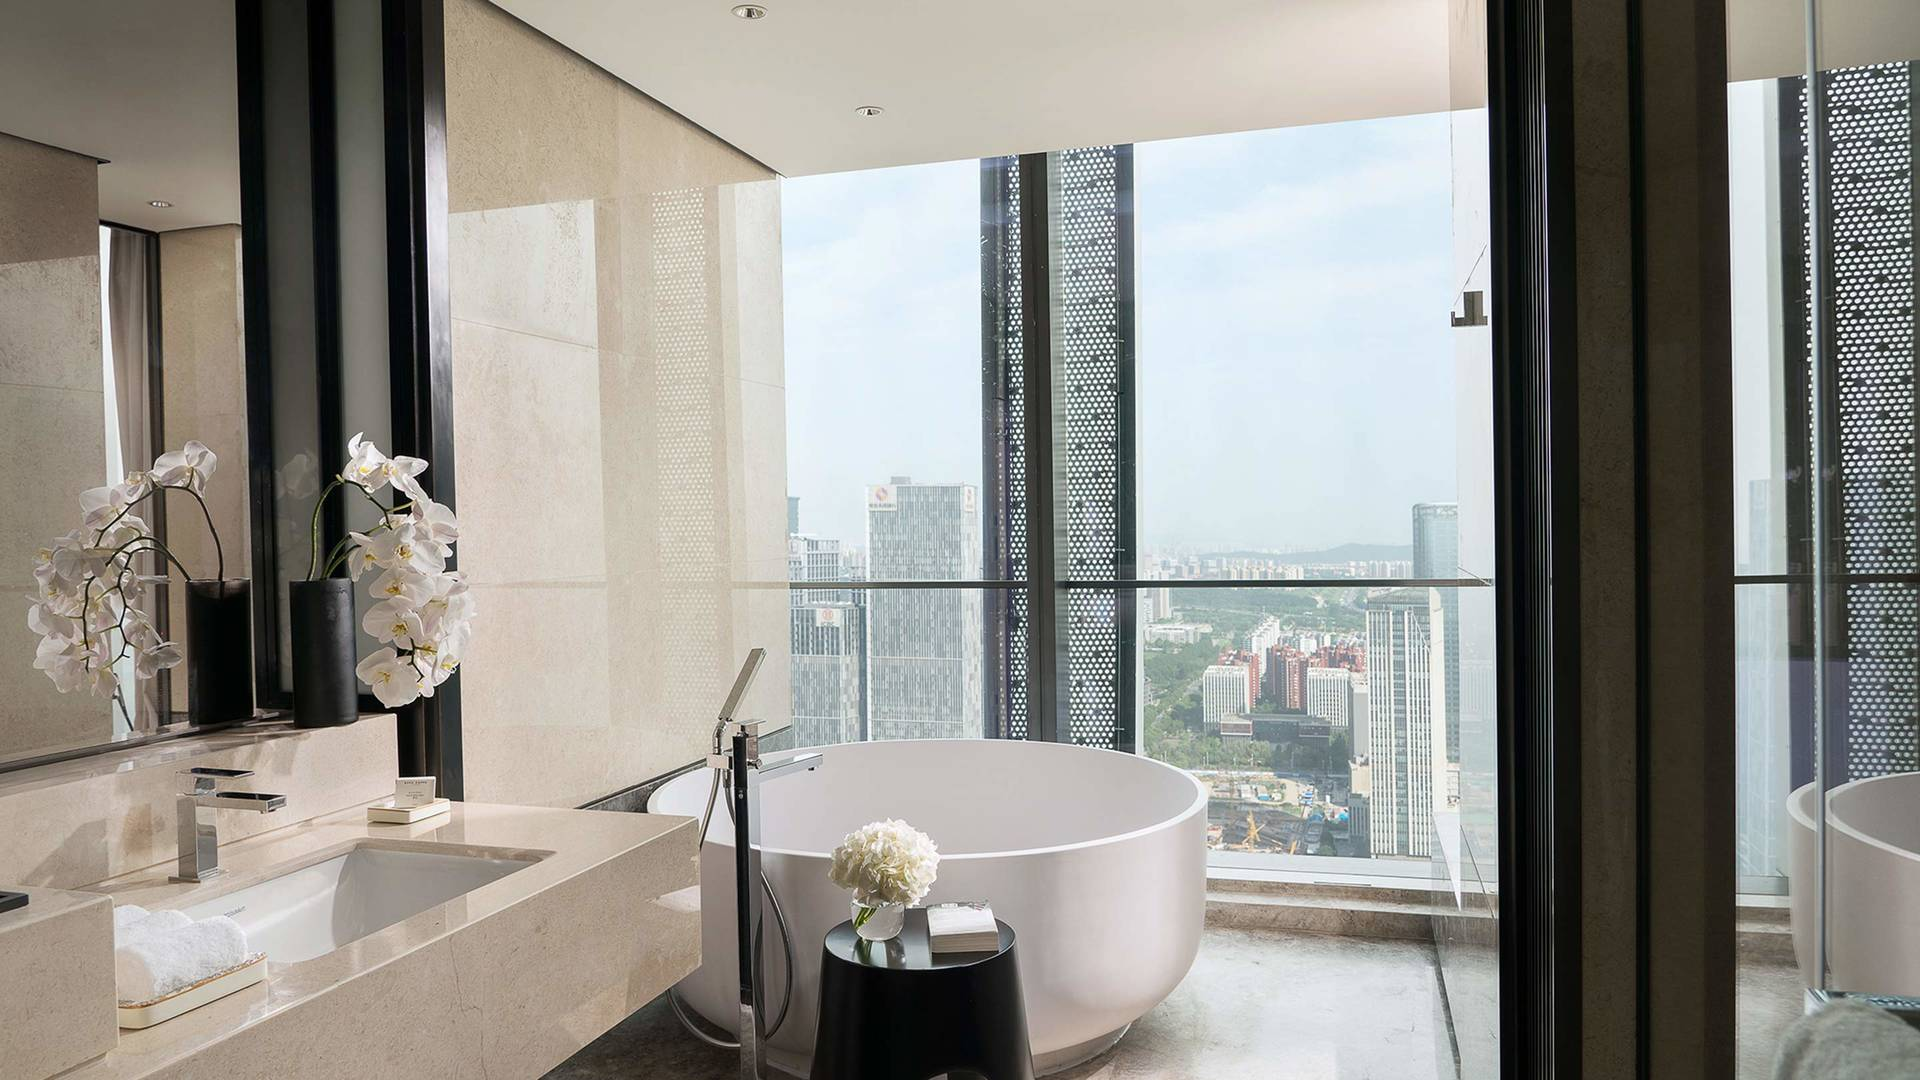 Jumeirah bathroom views Nanjing_6-9